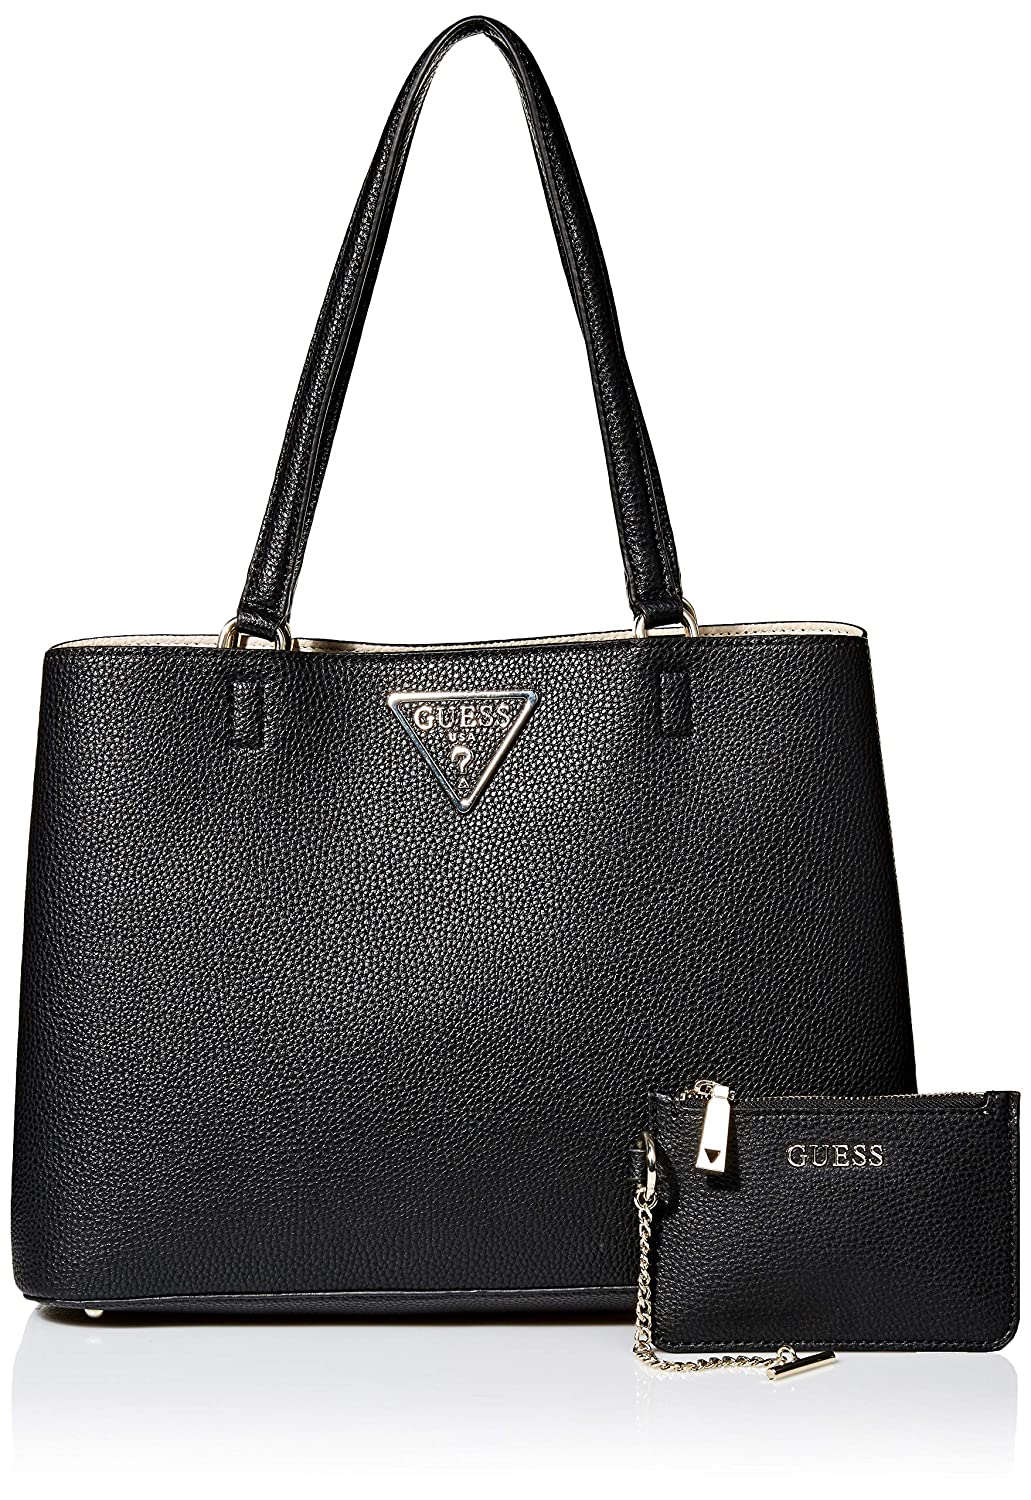 Borsa donna guess mod Kamryn tote colore black multicolor